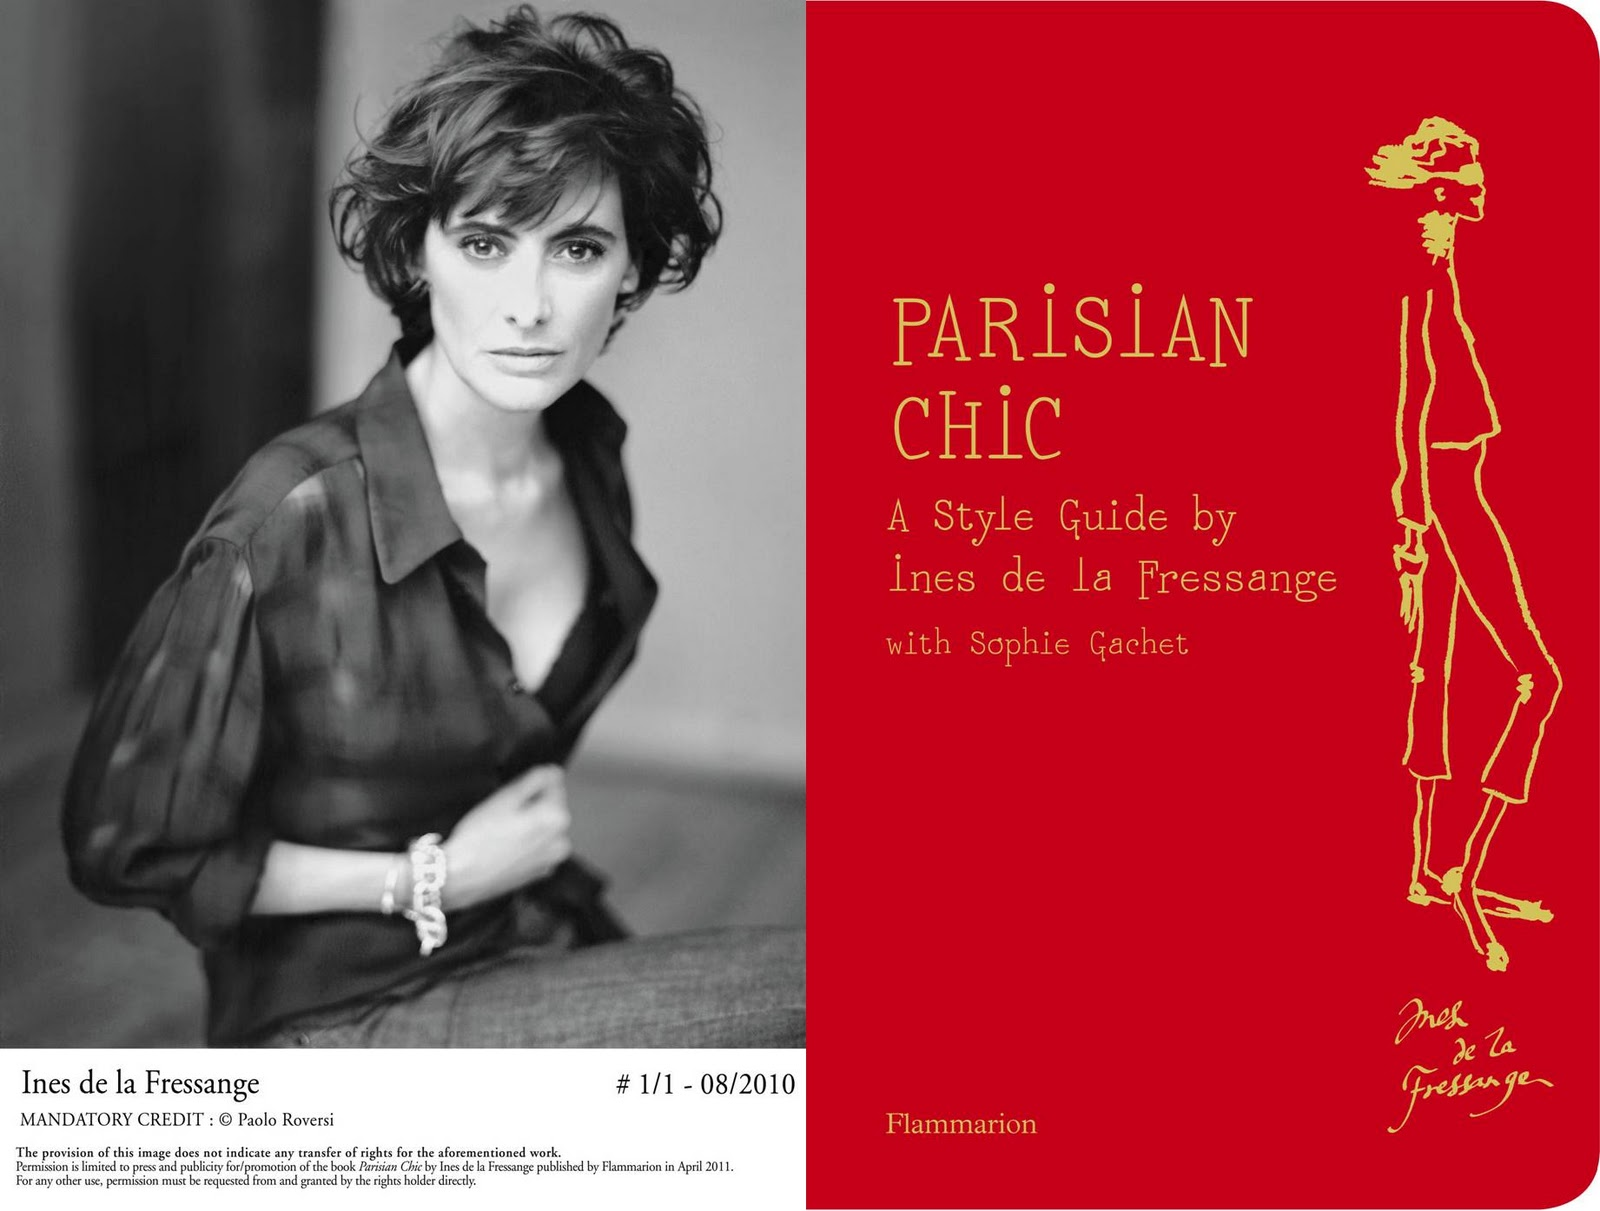 lotus reads parisian chic a style guide by ines de la fressange rh lotusreads blogspot com parisian chic a style guide pdf download parisian chic a style guide by ines de la fressange